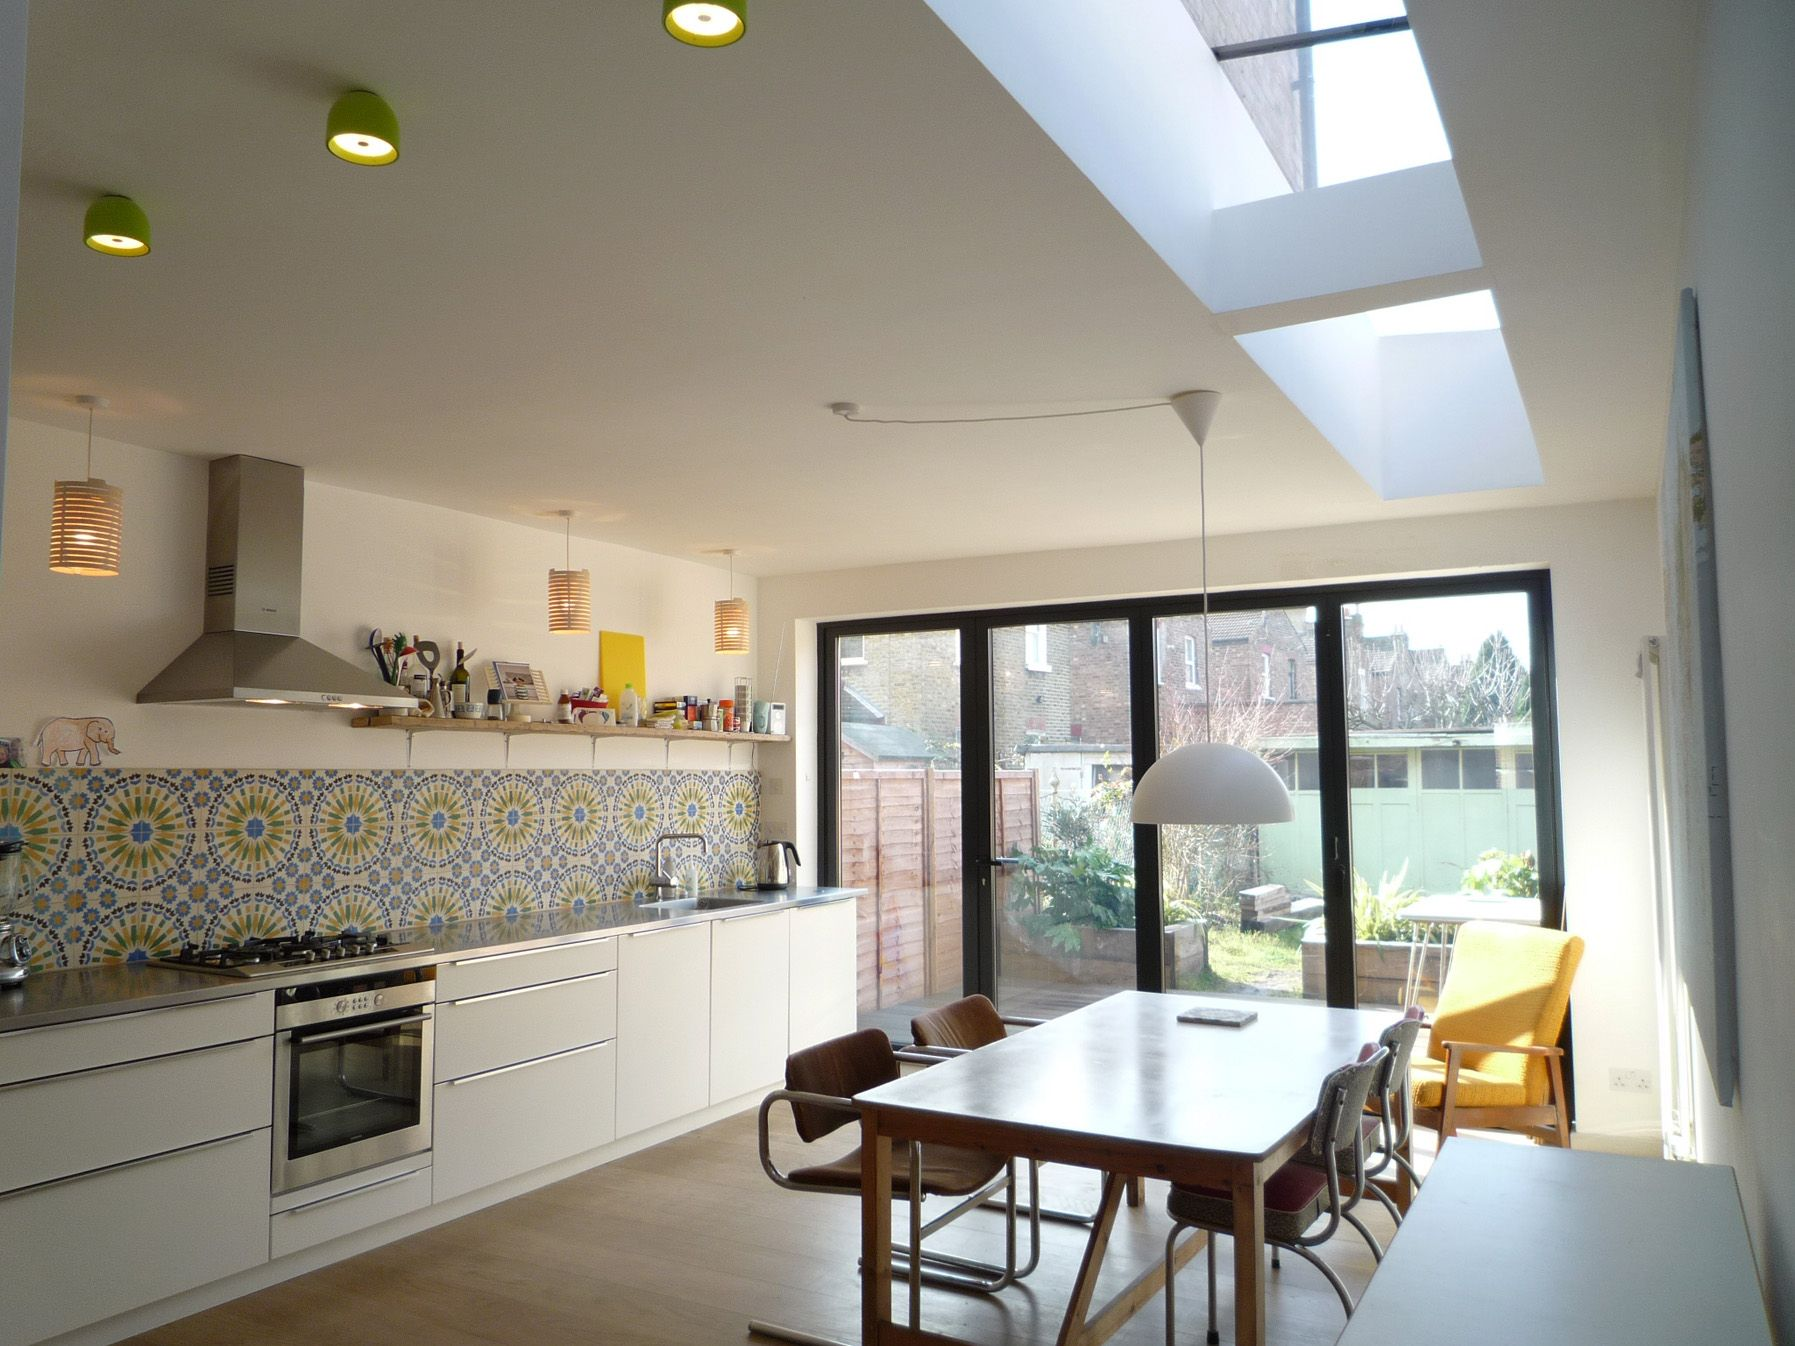 Terraced house kitchen extension google search for Extensions kitchen ideas